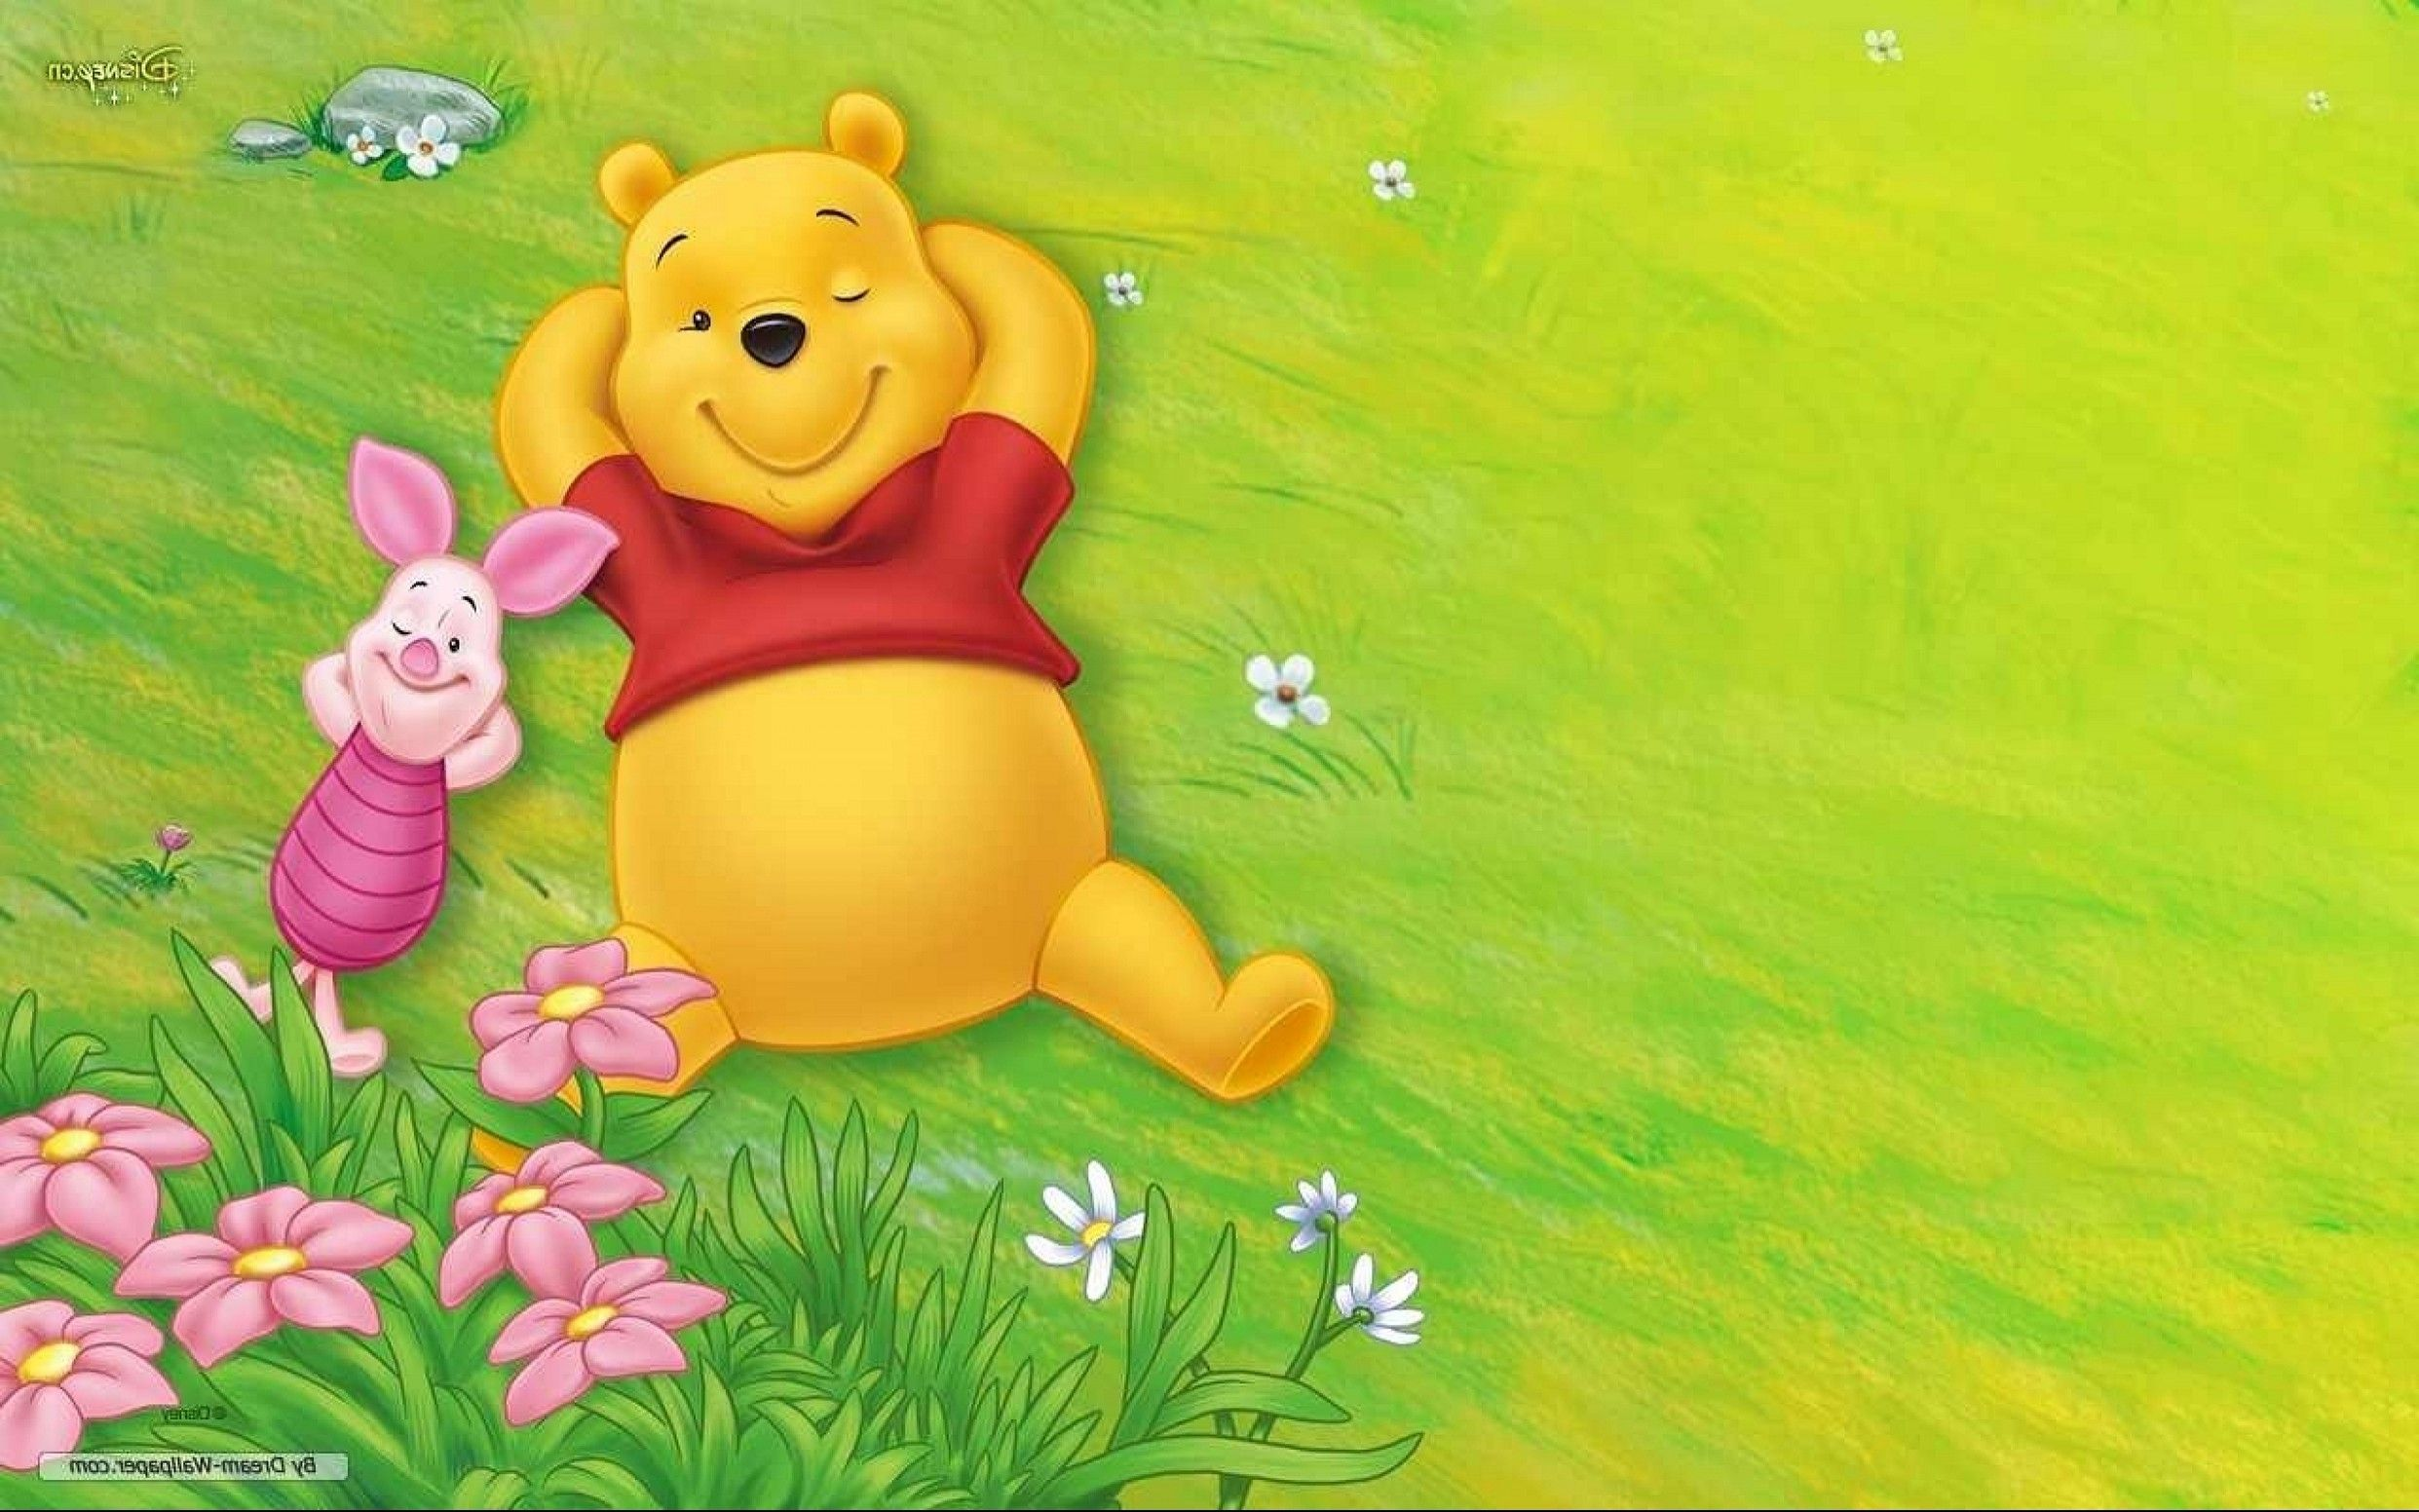 Winnie the pooh and friends wallpaper hd wallpapers pinterest winnie the pooh and friends wallpaper voltagebd Gallery